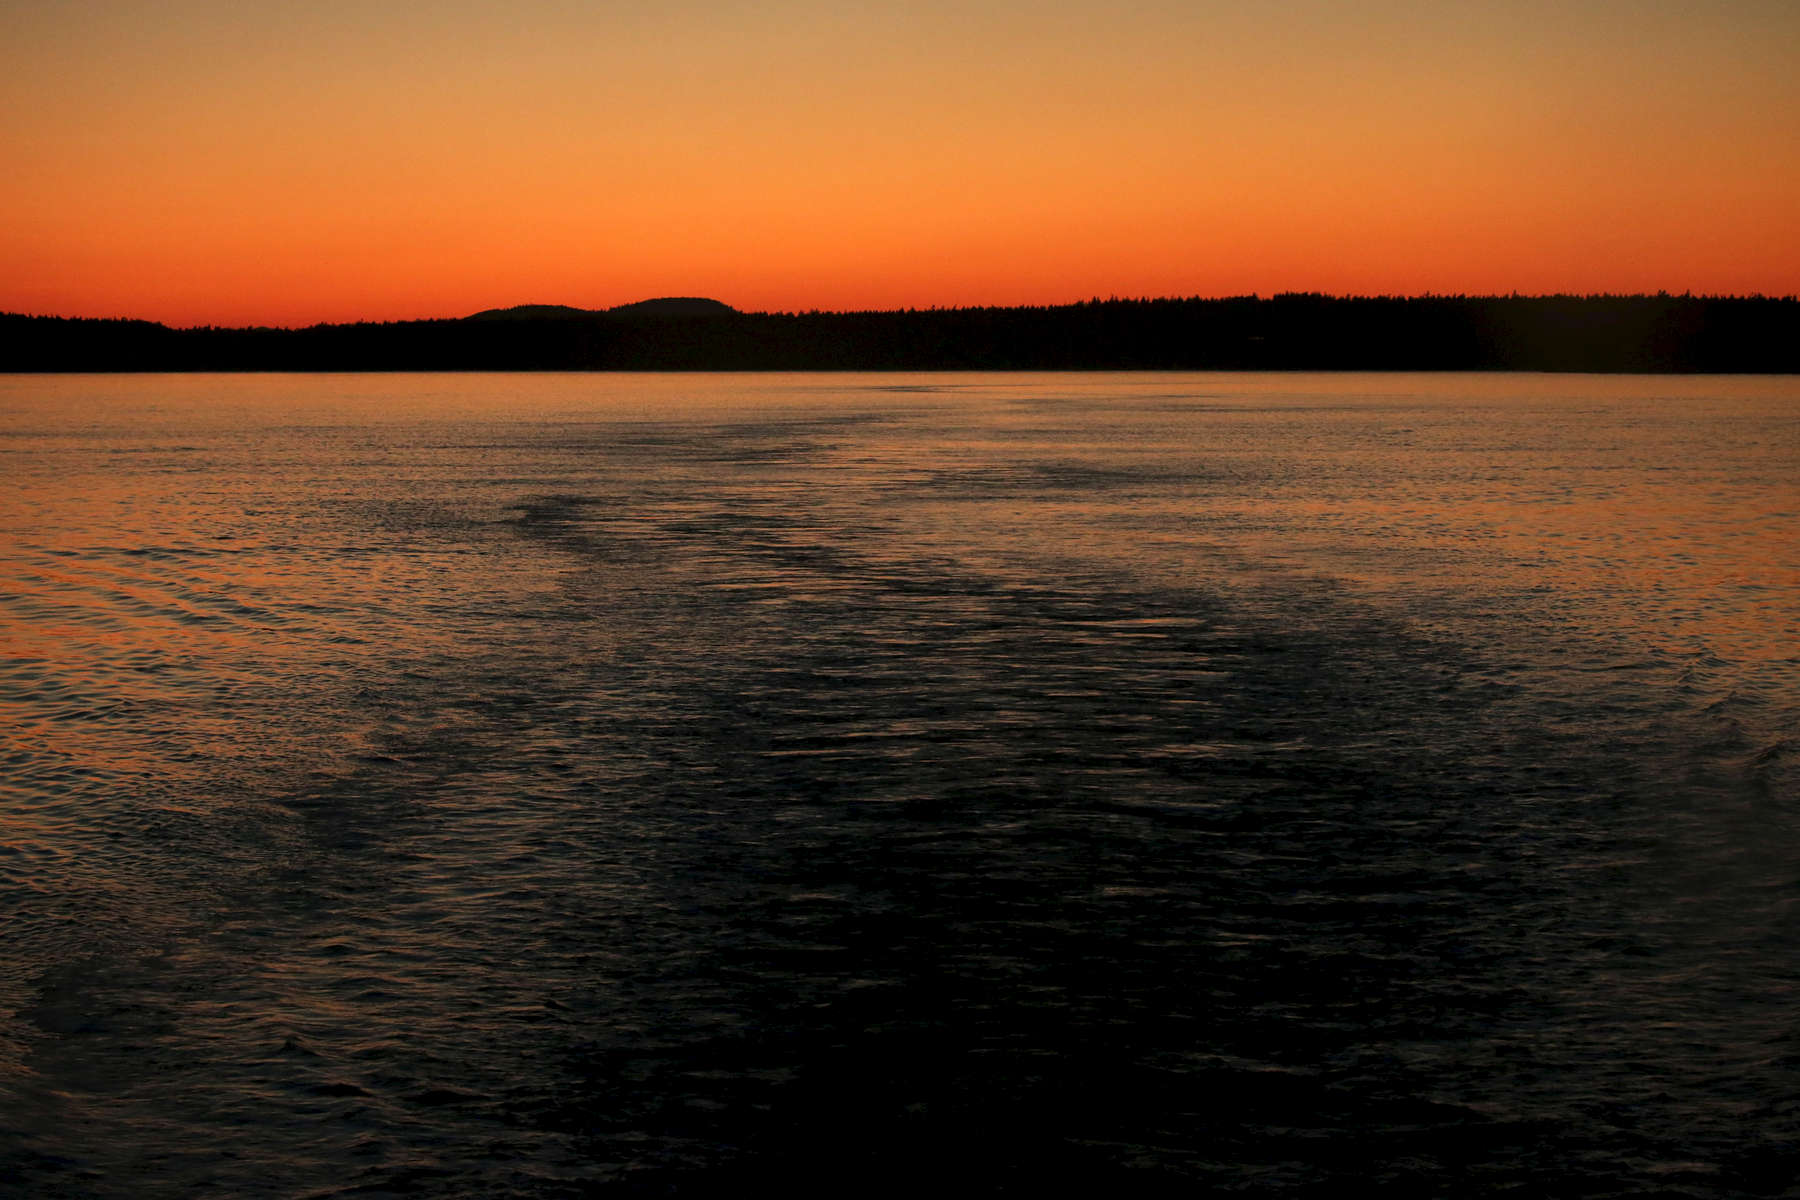 The setting sun illuminates wake in the water on the ferry ride from Friday Harbor to Anacortes.